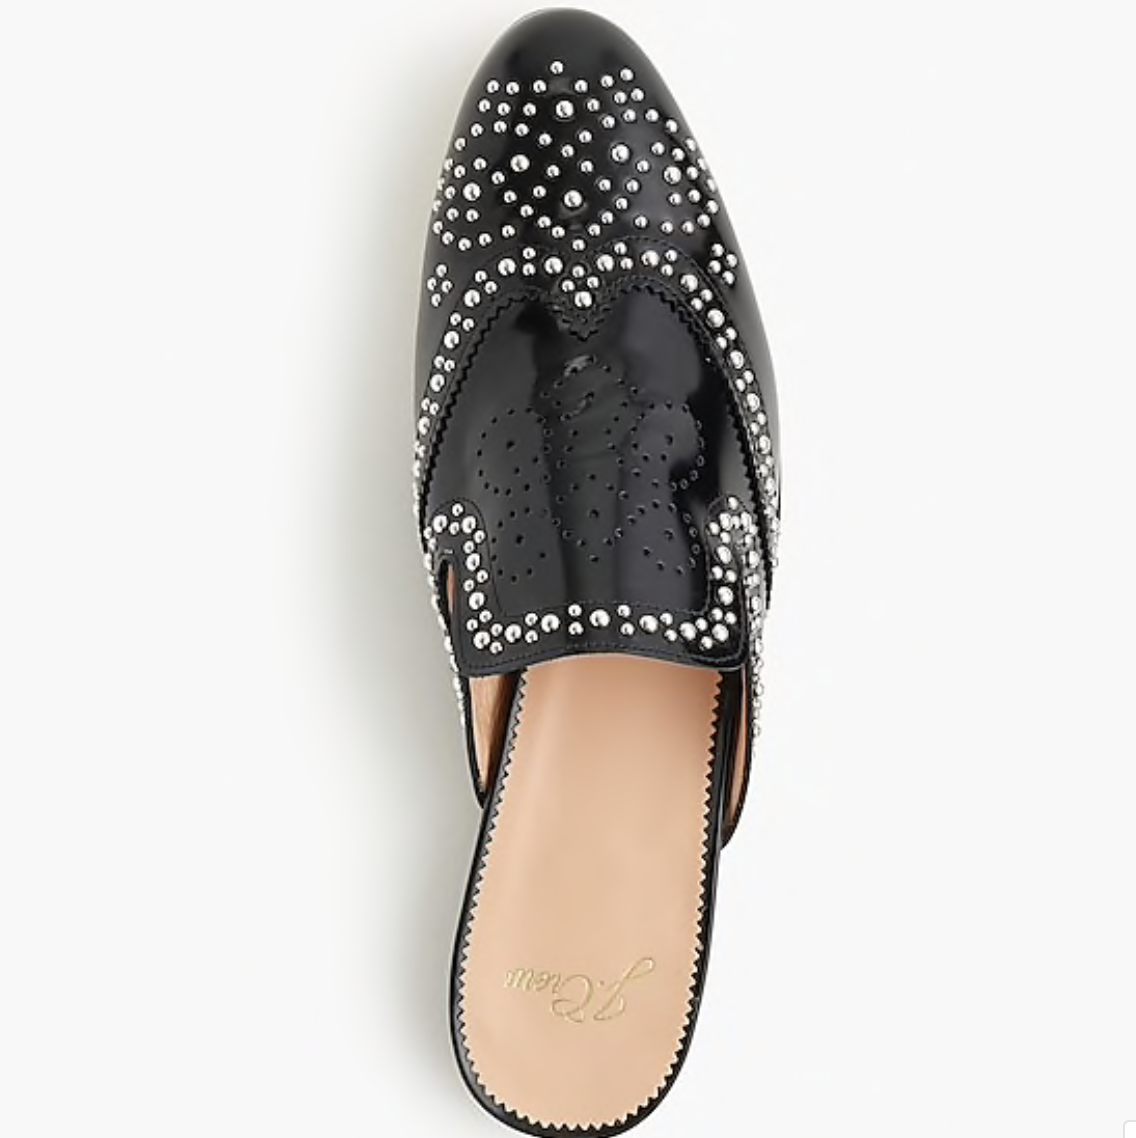 j crew studded academy penny loafer mules